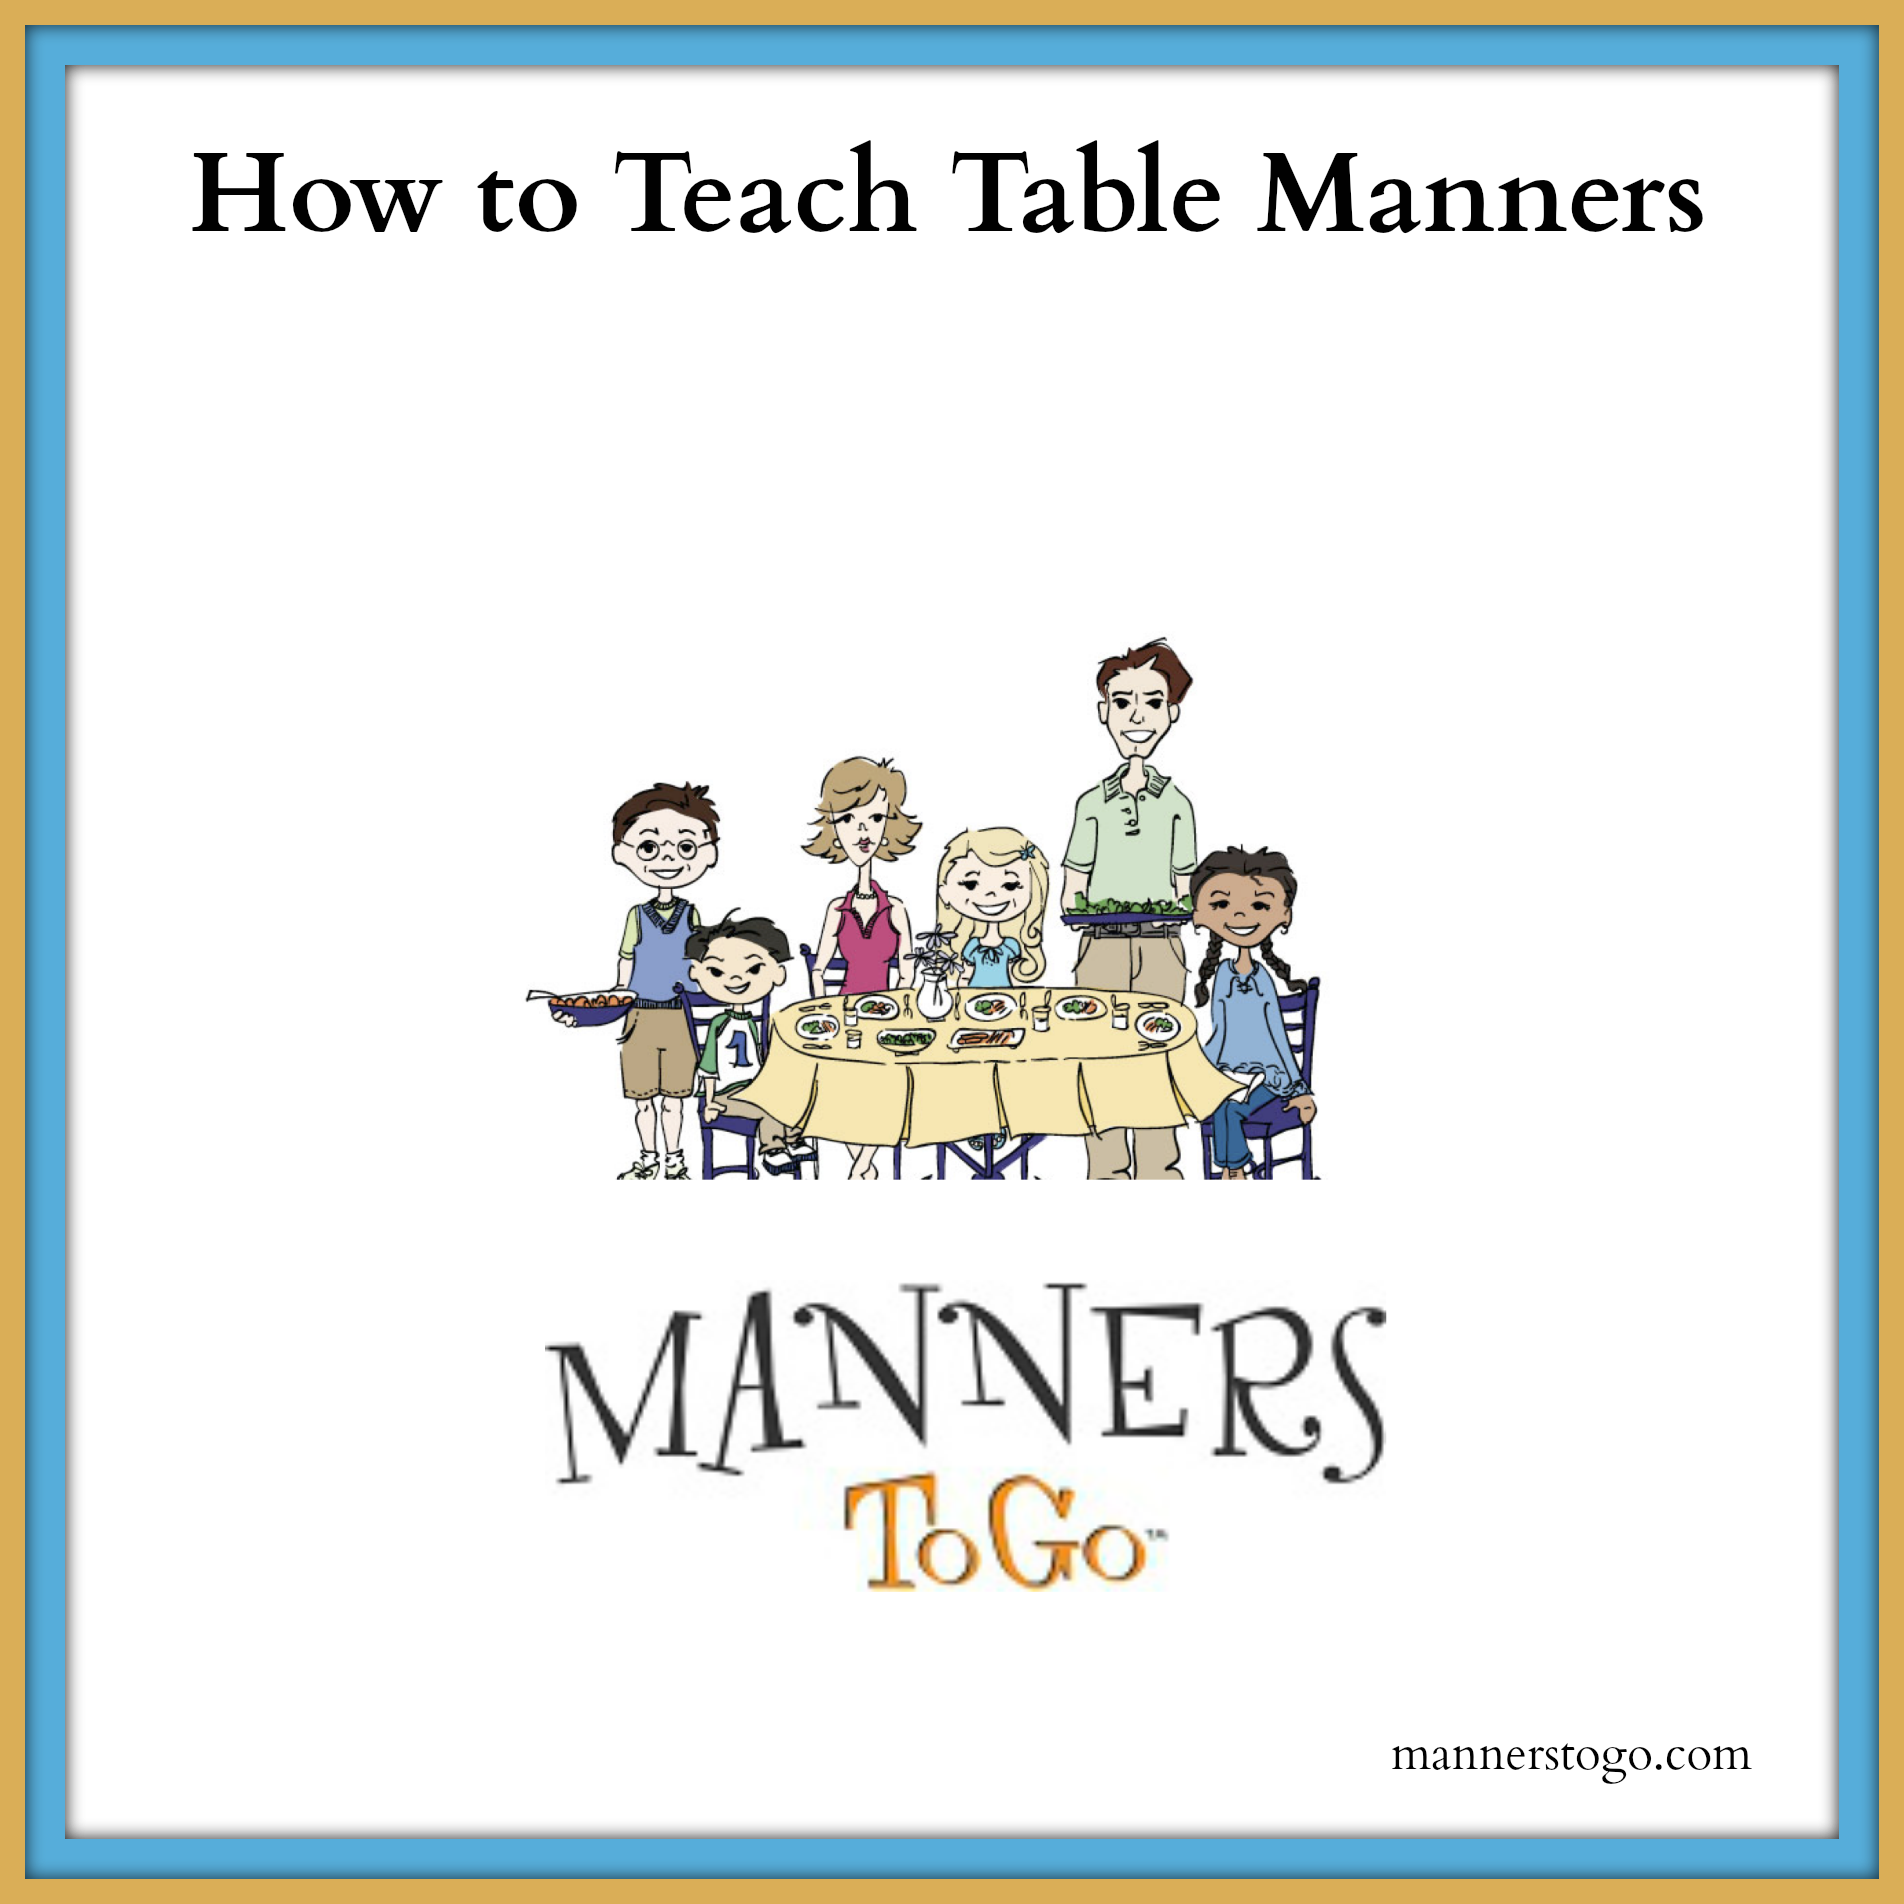 How To Teach Table Manners To Children